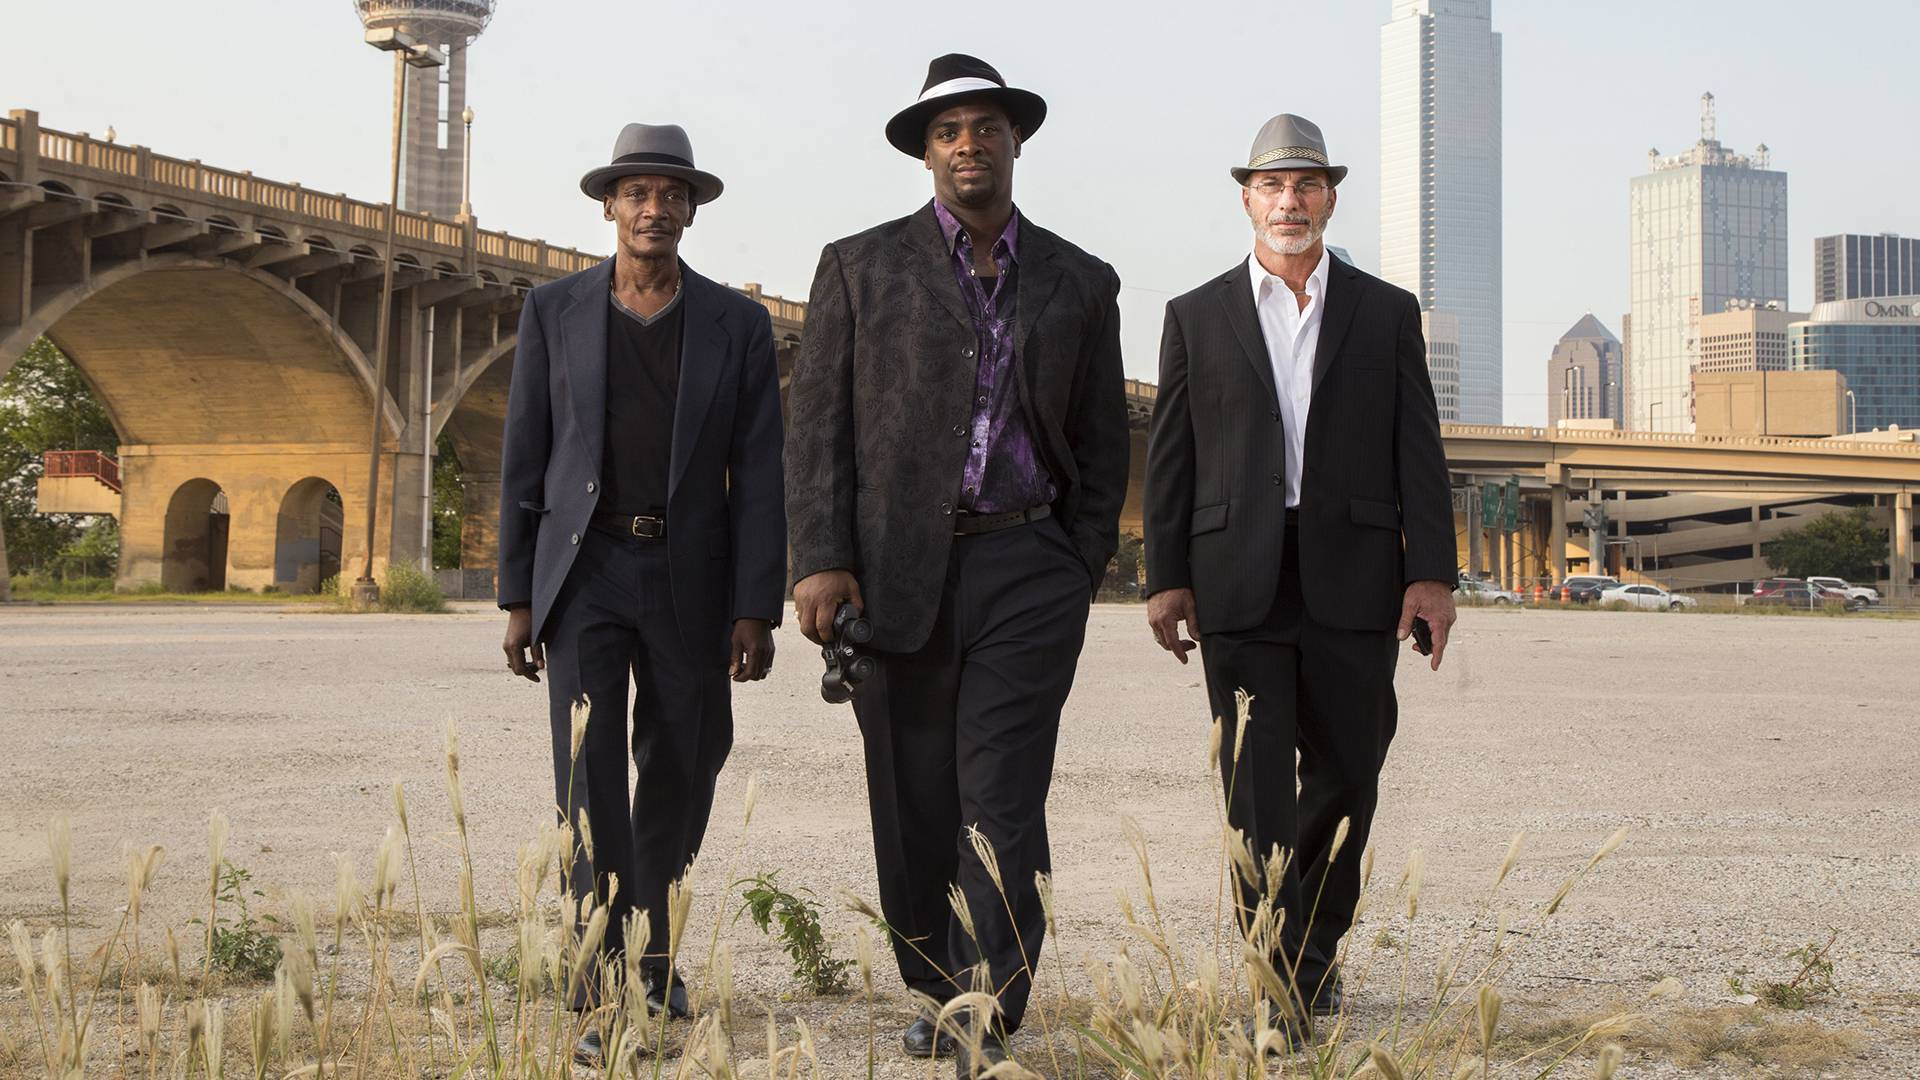 Detective firm founded by exonerated Dallas men profiled in new 'Independent Lens' film